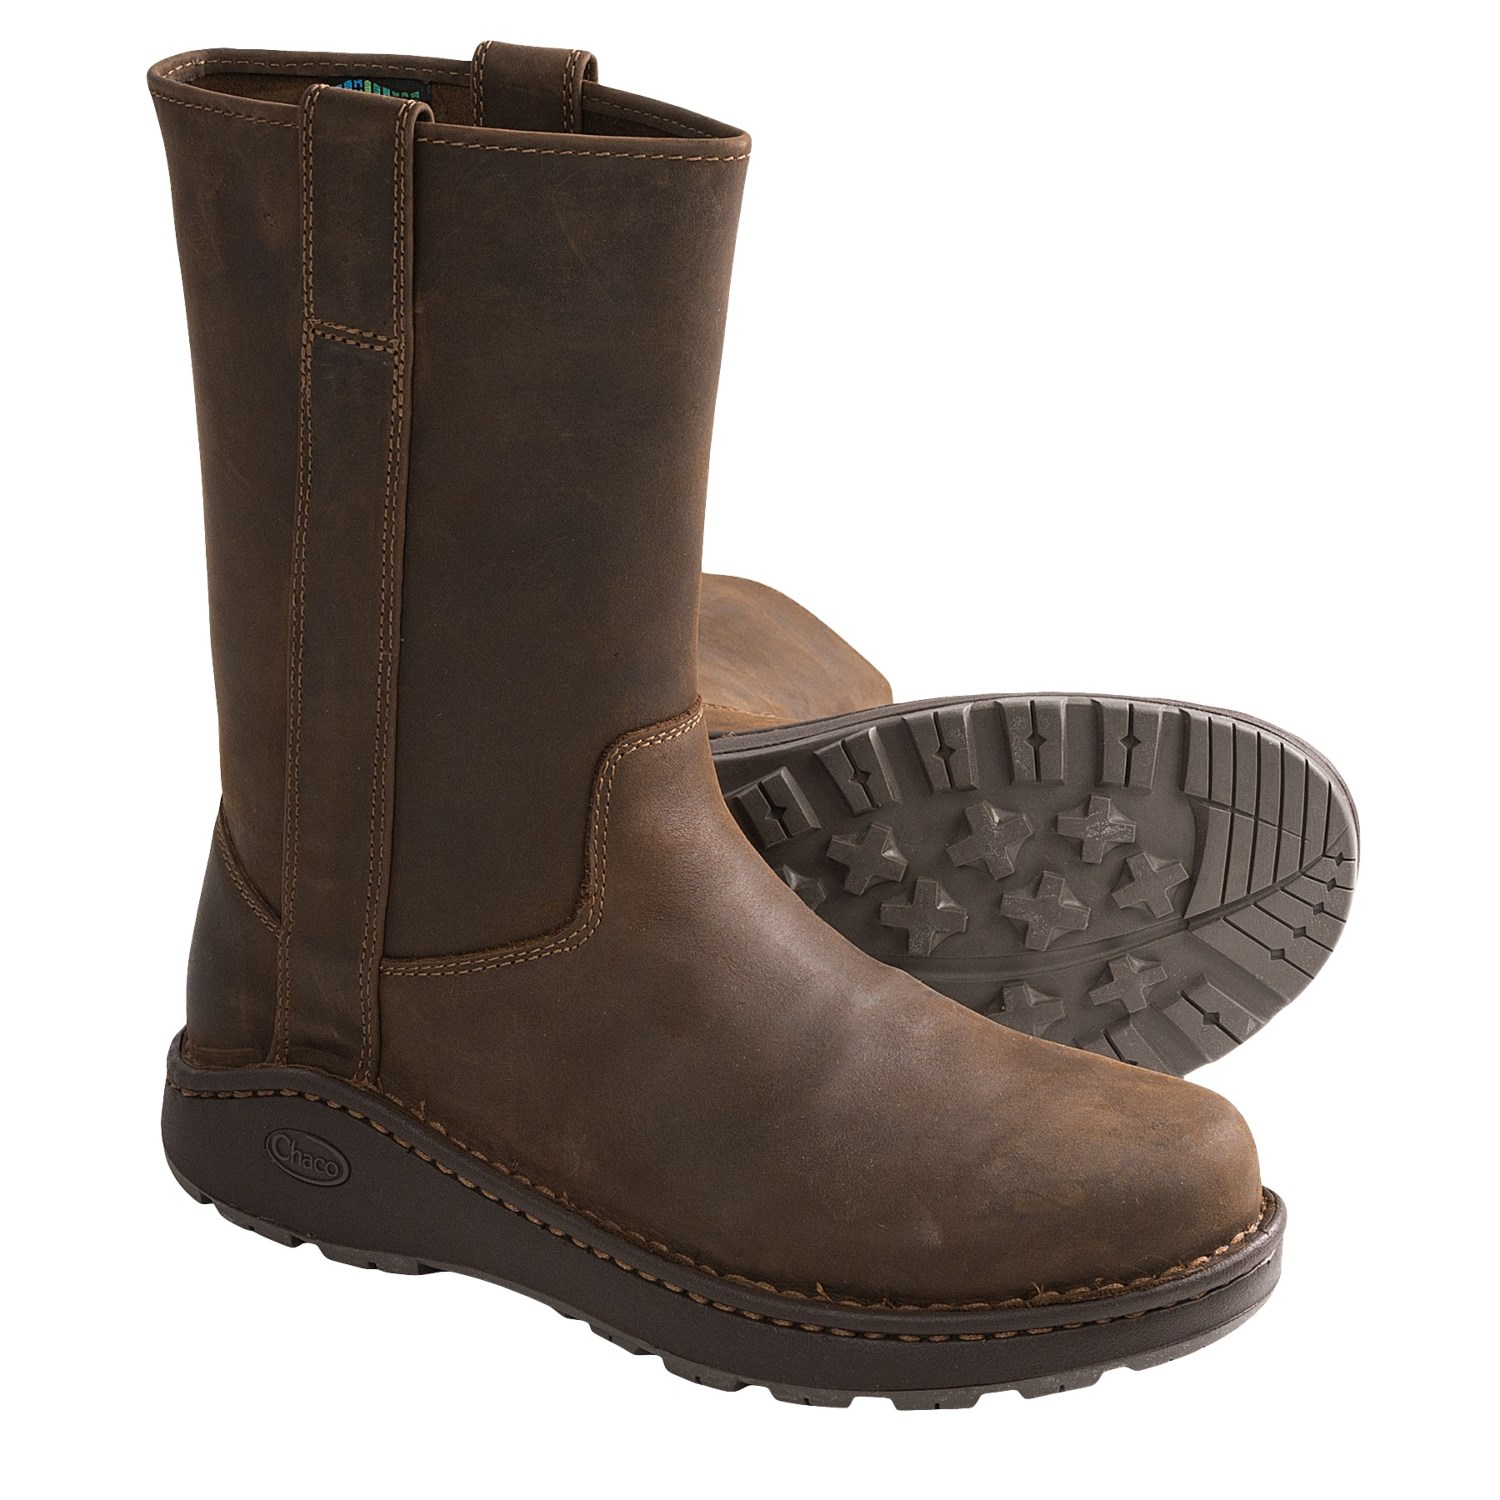 chaco credence nurl boots leather for save 35